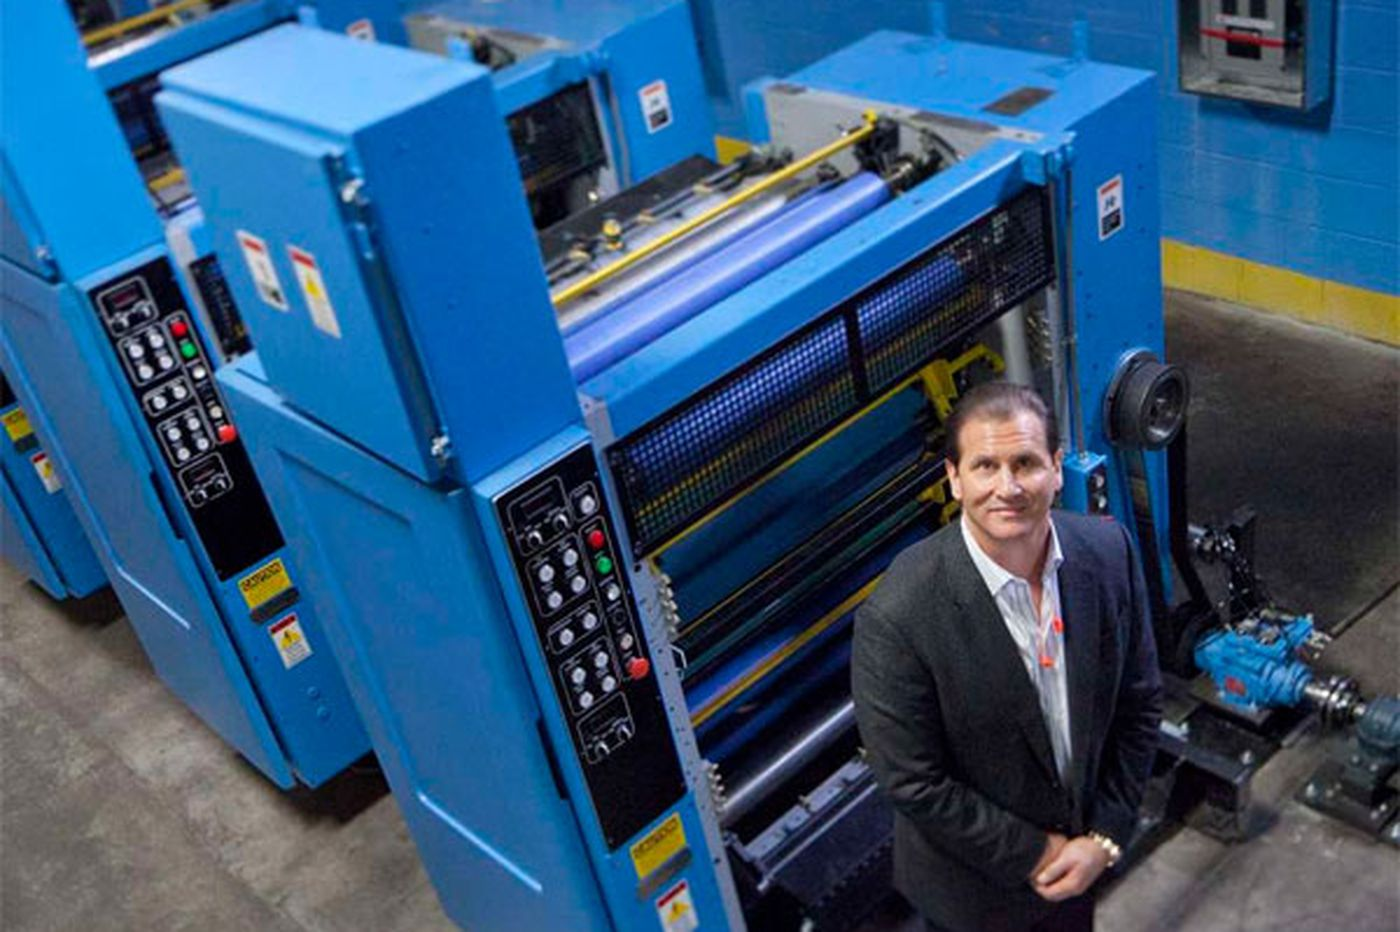 Pennsauken printing firm, in hiring boom, looks to expand